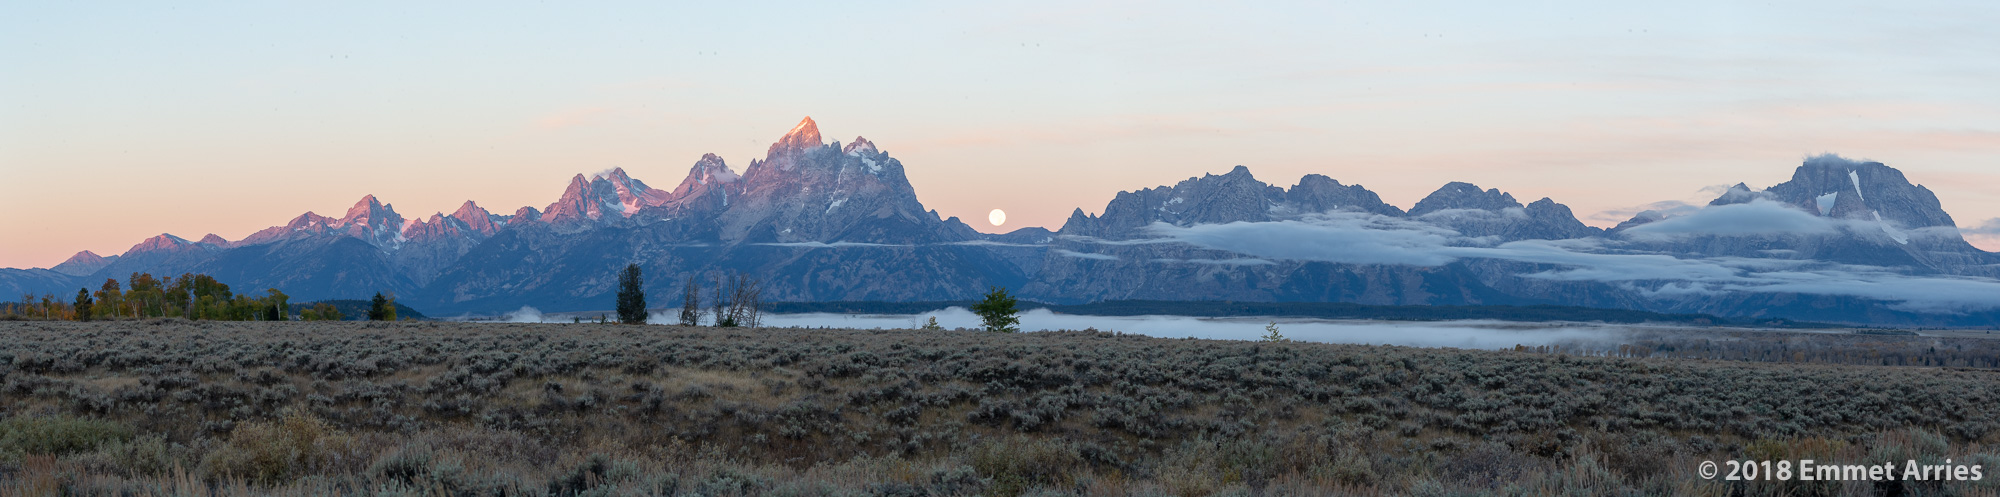 Just as the first light hits the top of the Teton range, casting a glow of pale pink, the full moon nears the horizon. This shot was challenging to capture because I had to research and determine exactly where the moon would set in relationship to Tetons, and I'm very delighted with the result!